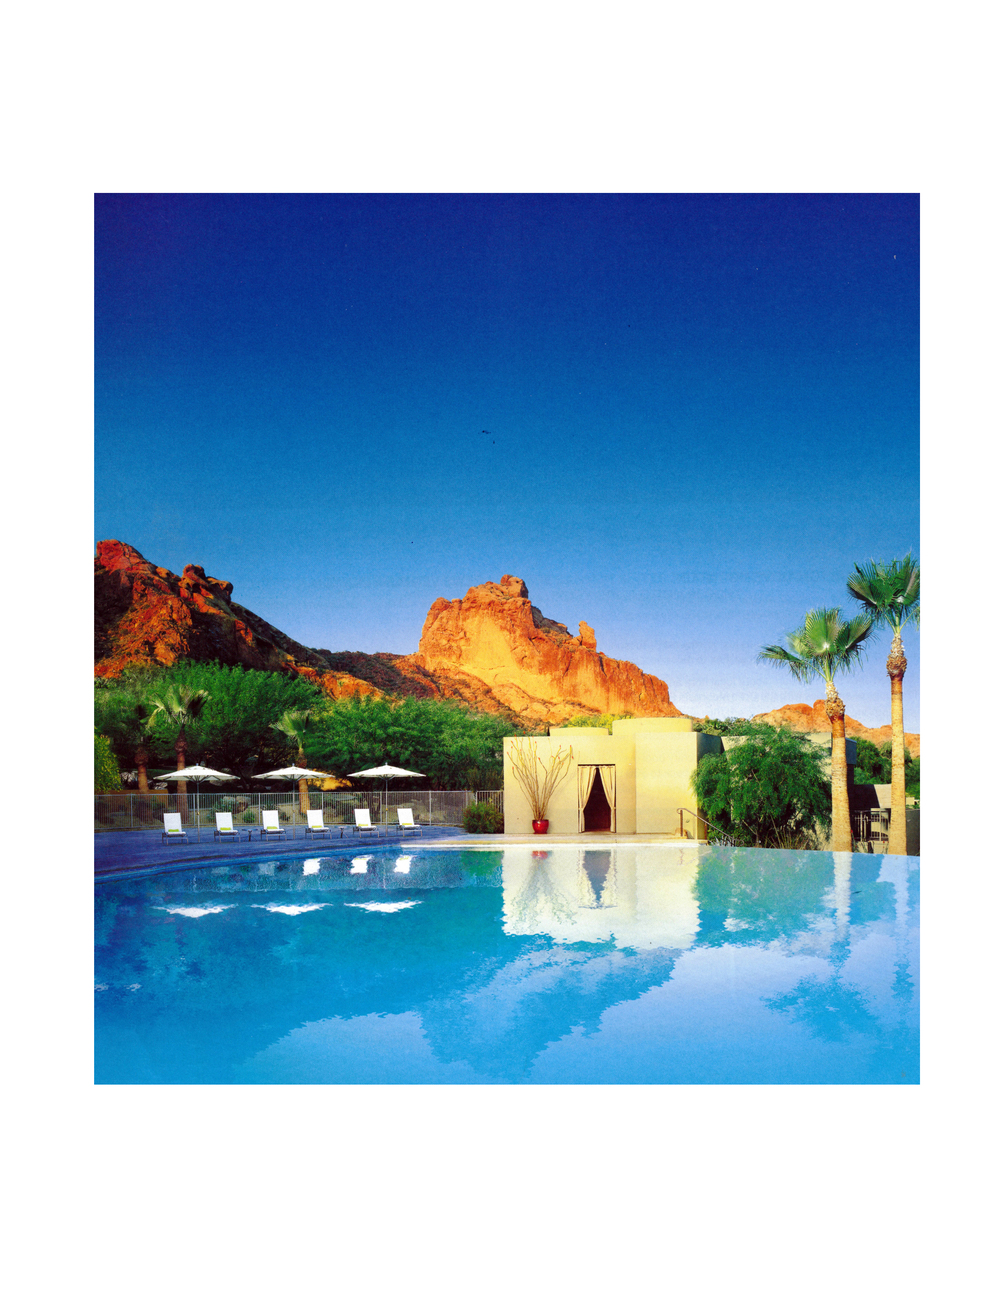 Sanctuary Camelback Mountain Resort & Spa  Scottsdale, Arizona  Image: American Express Fine Hotels & Resorts Travel Guide, 2014